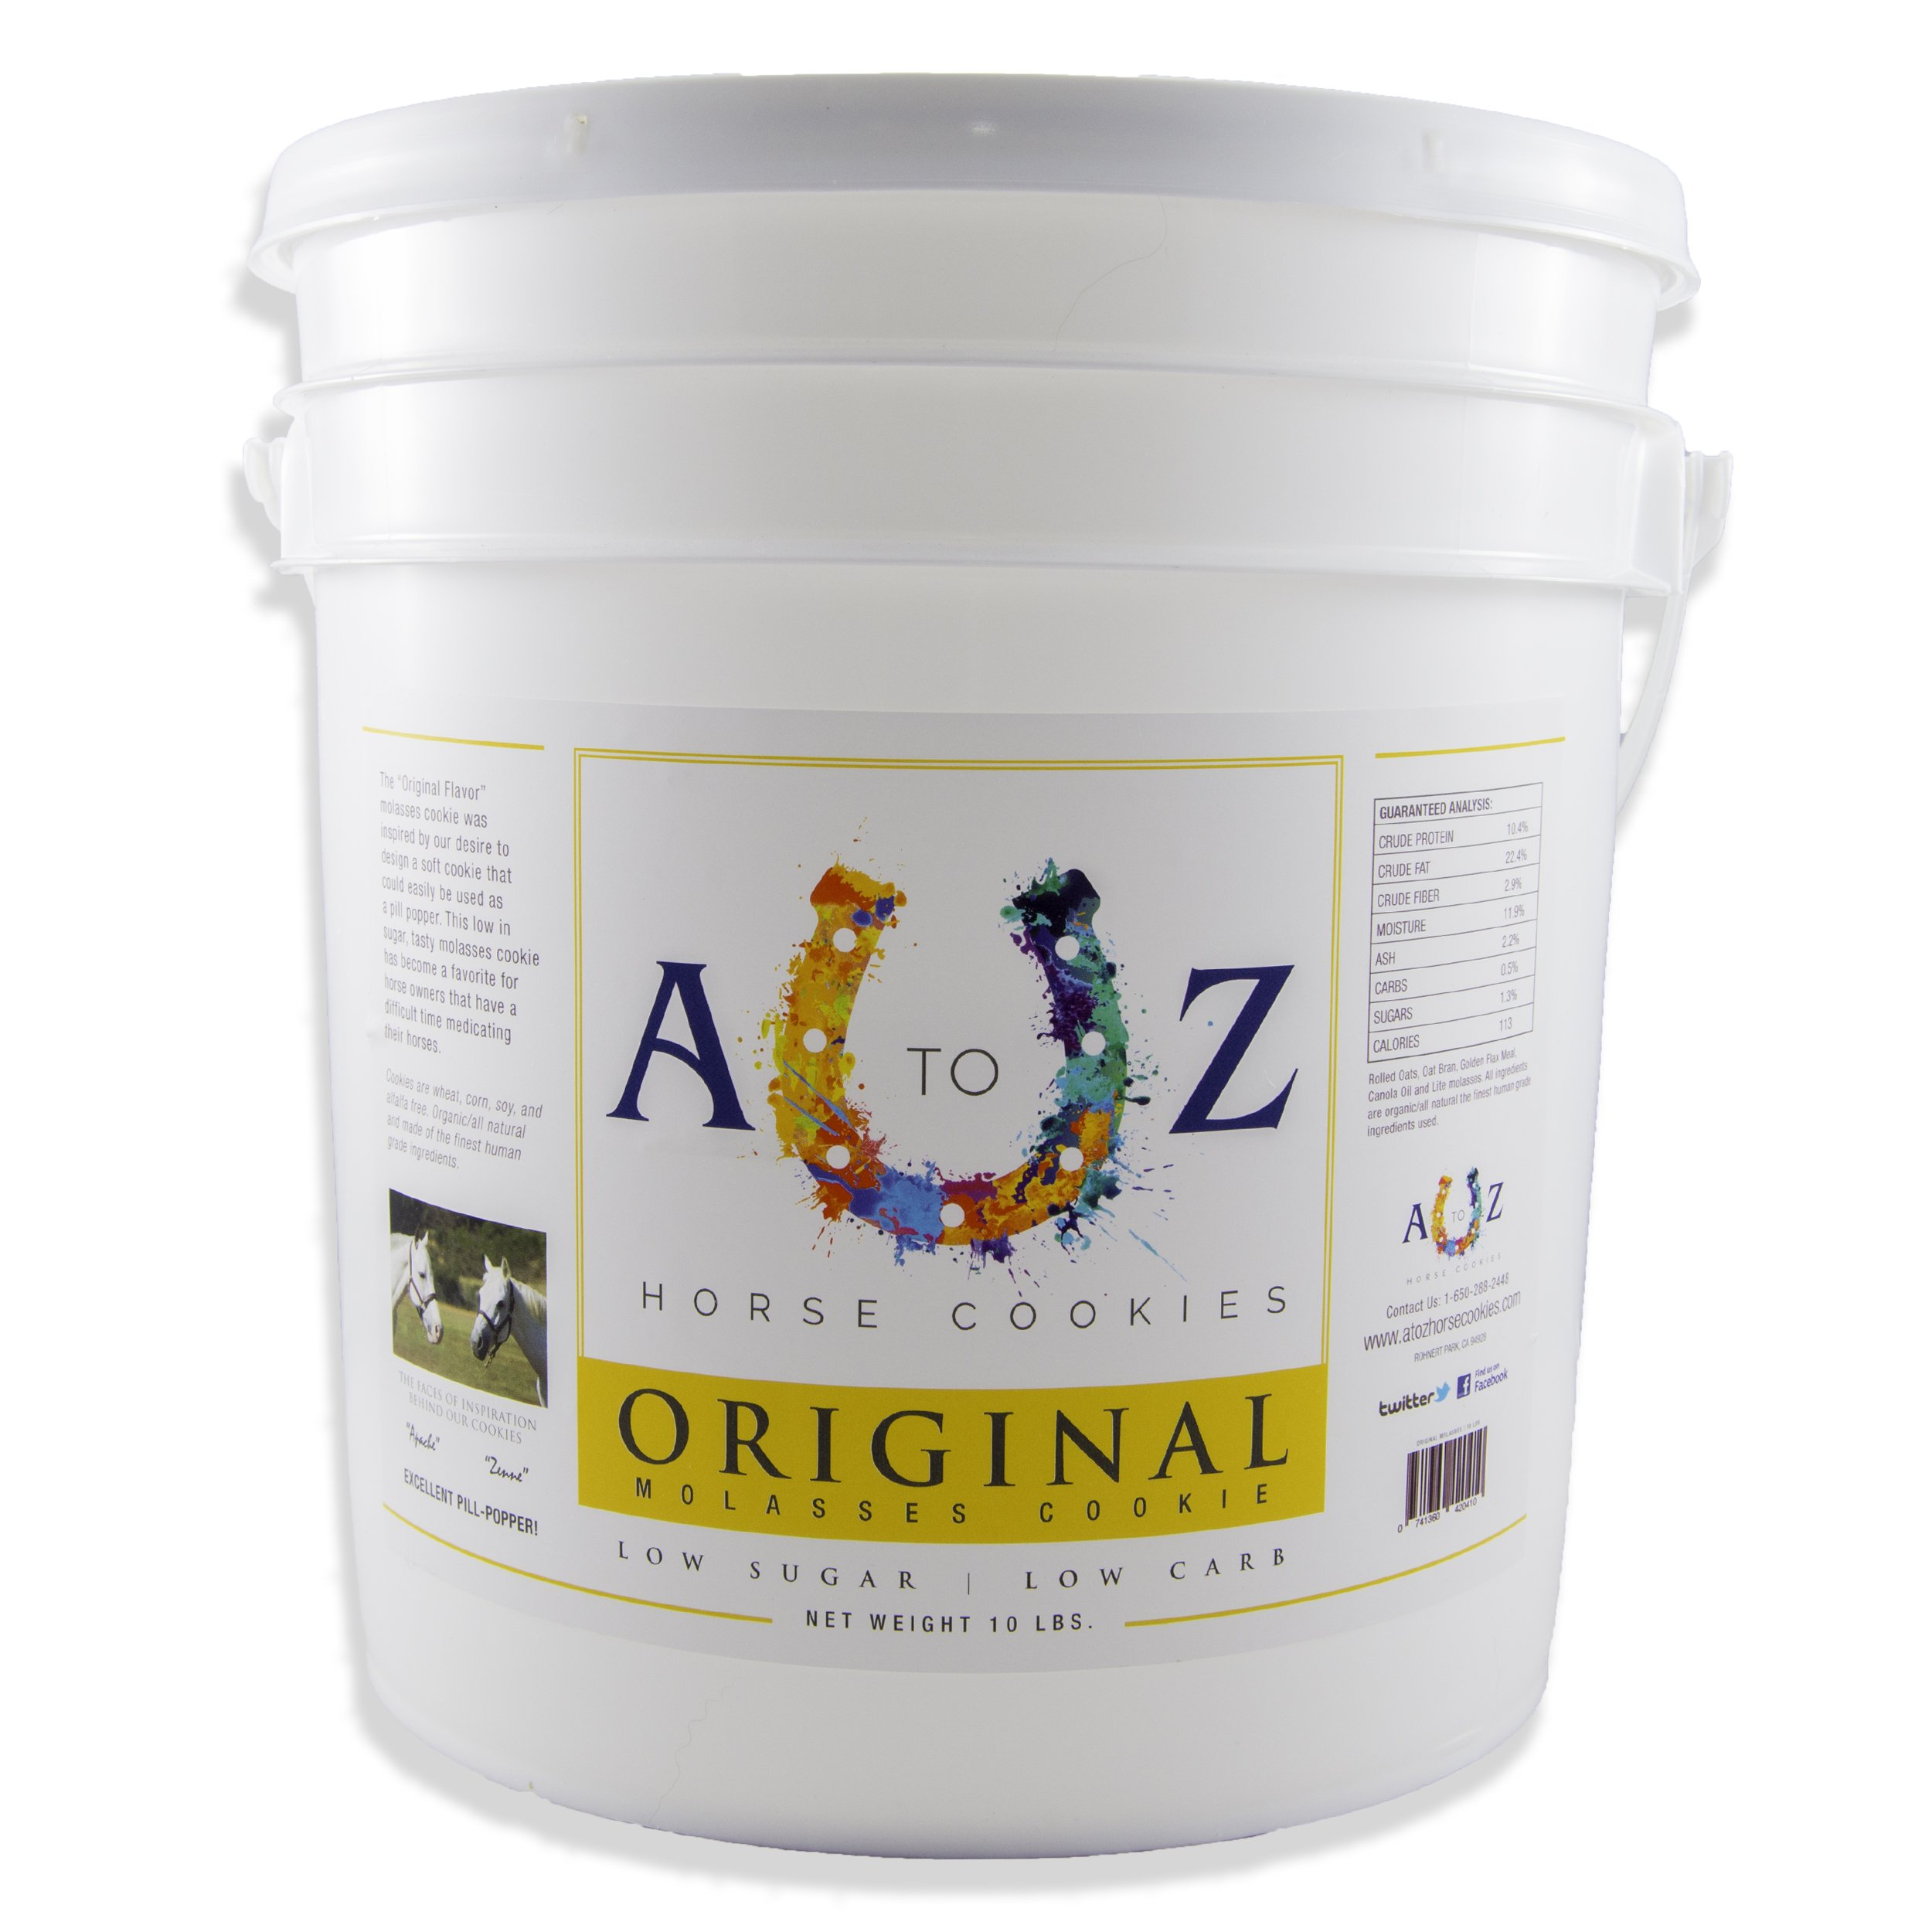 Horse Cookie Treat: Original Flavor by A - Z Horse Cookies, Low Carb Low Sugar Softer Treats, Organic, Great for All Horses and Excellent for Those with Metabolic Conditions, 10 lbs Pail